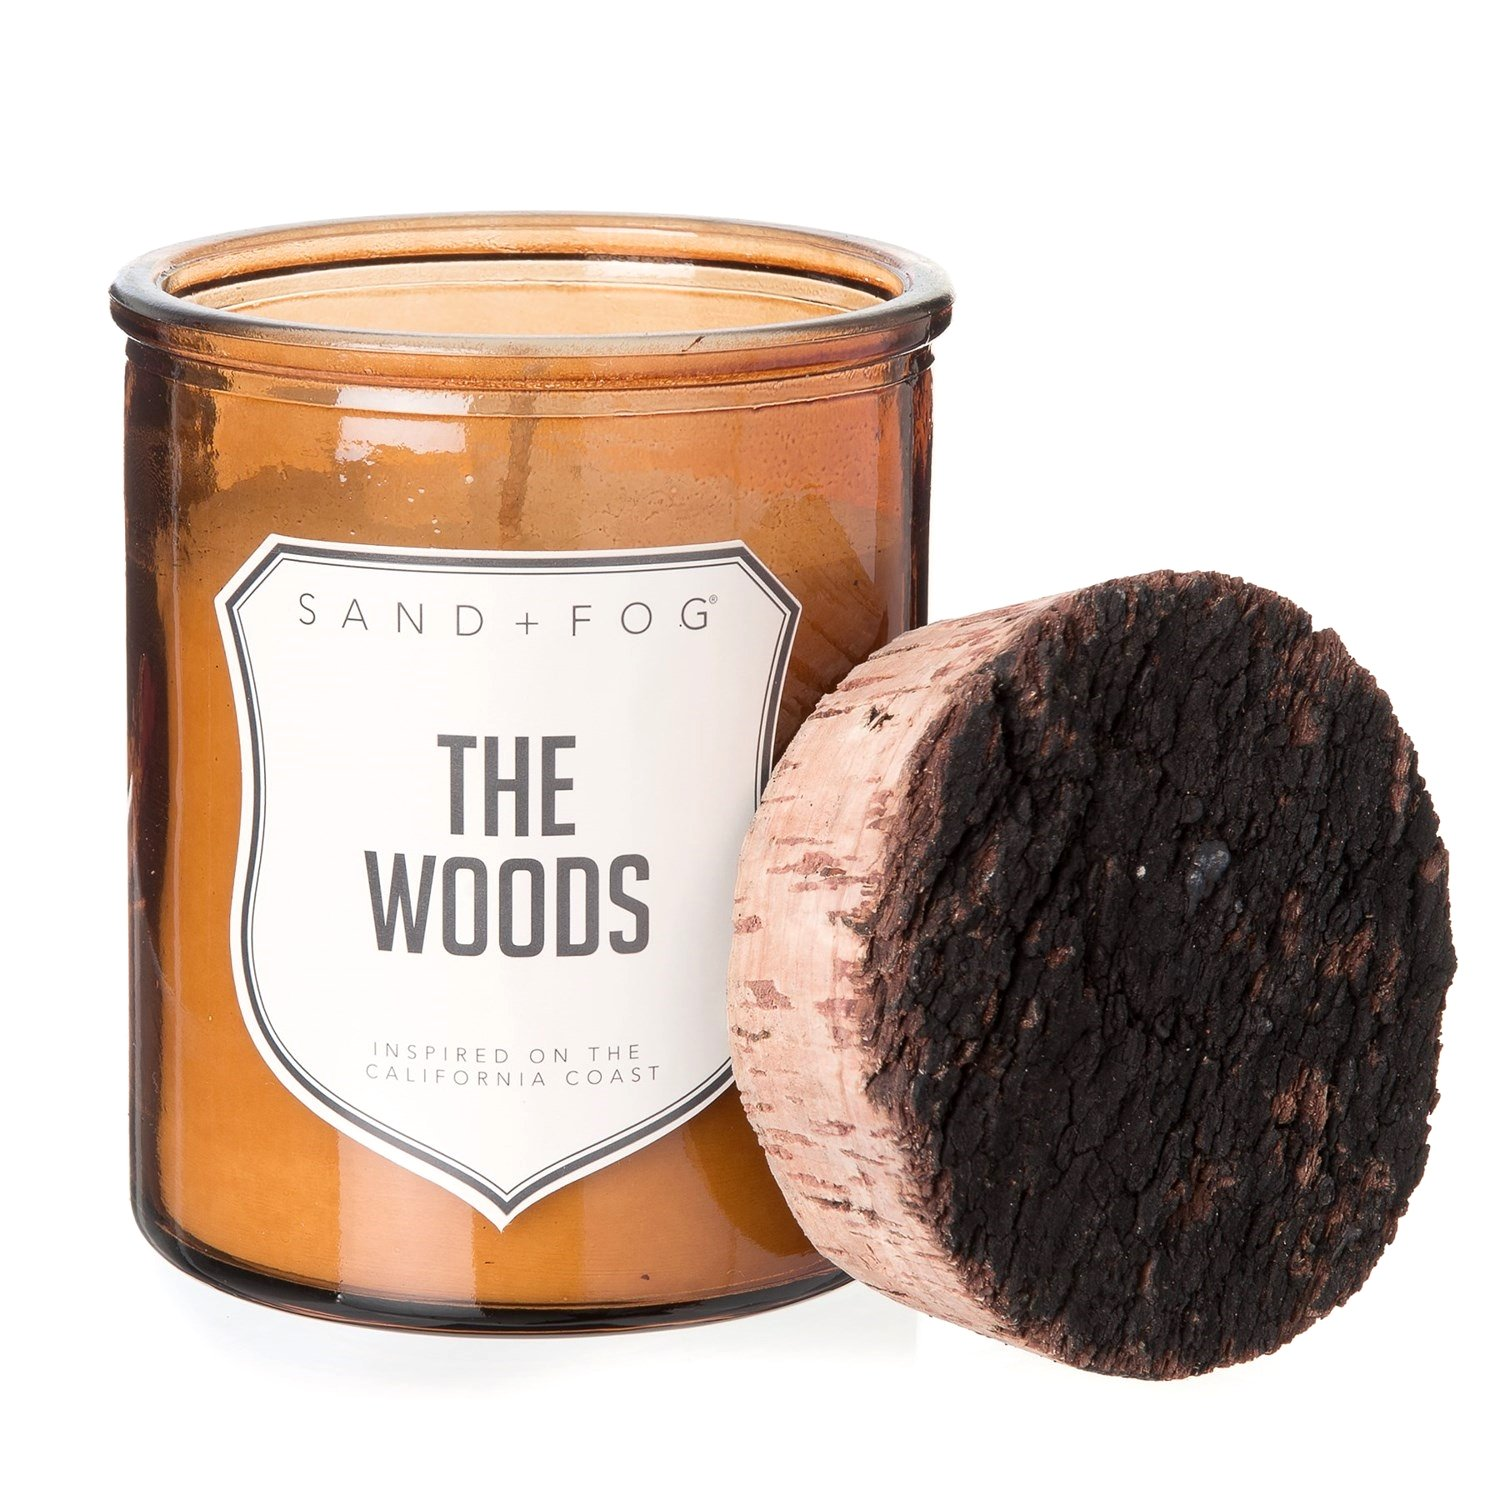 Sand + Fog The Woods Glossy Molded Glass Candle - 9 oz, Cork Lid